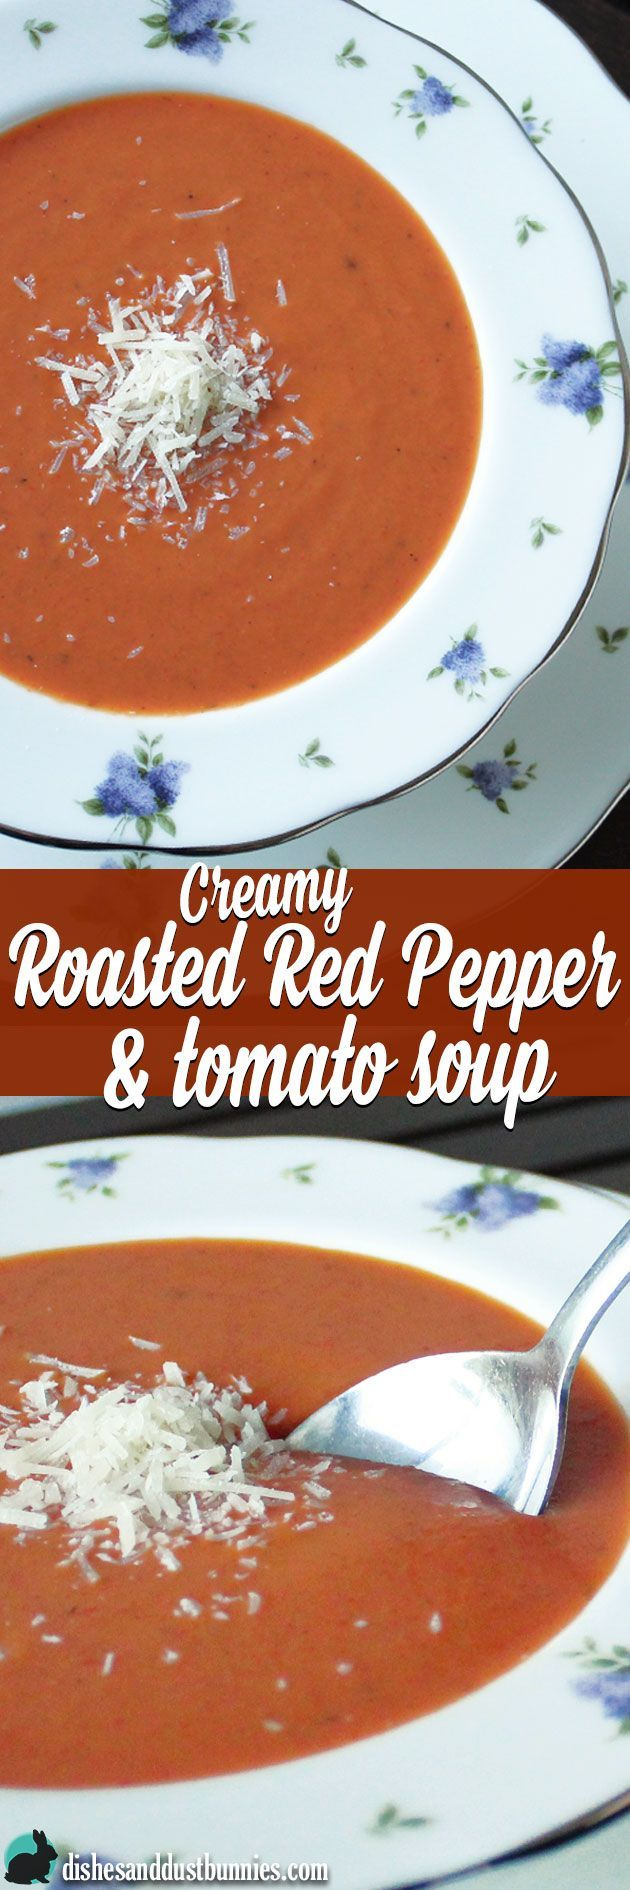 Creamy Roasted Red Pepper & Tomato Soup via @mvdustbunnies